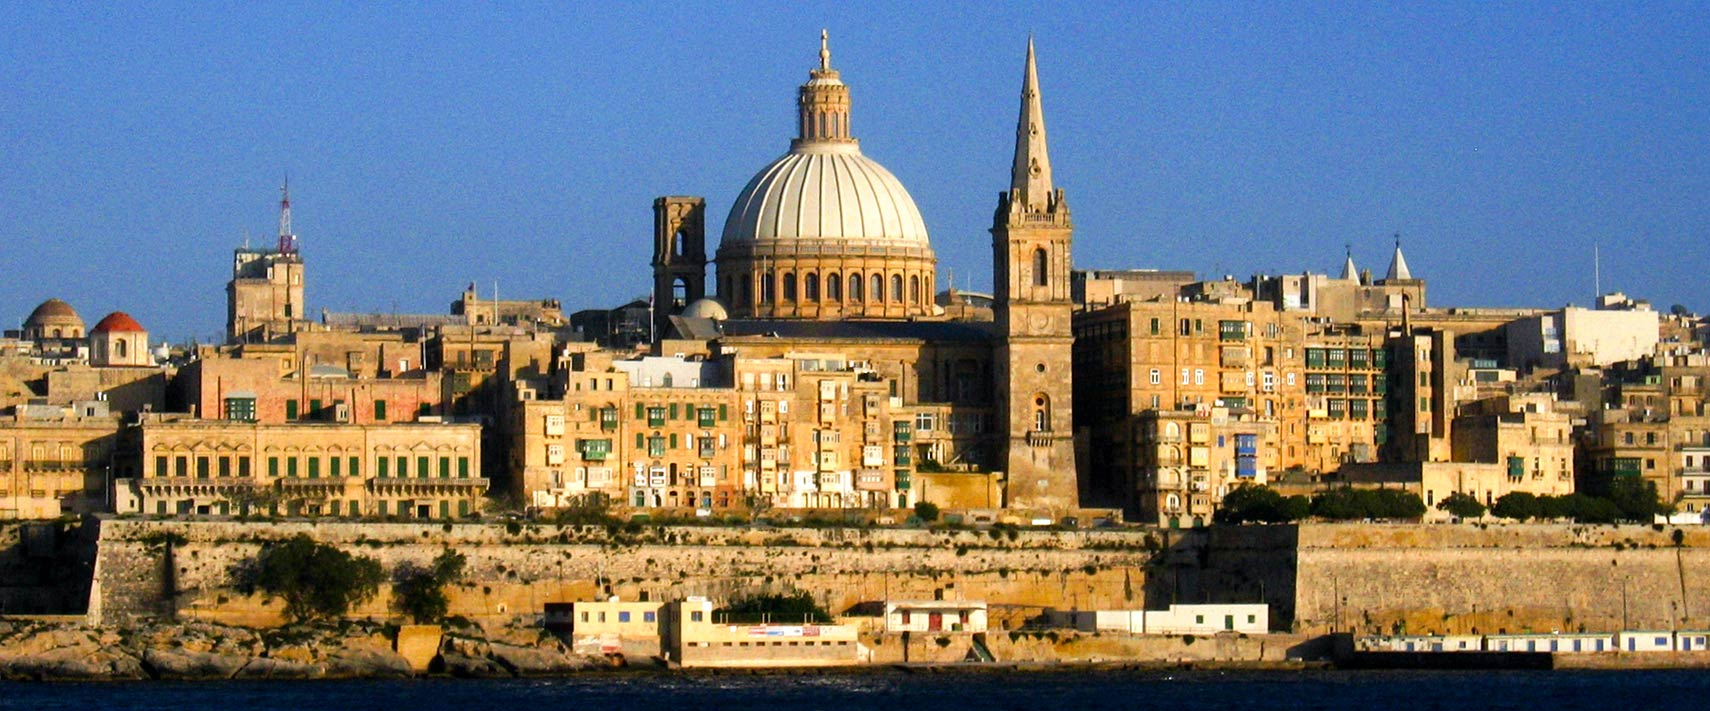 Google Map of the City of Valletta Malta  Nations Online Project